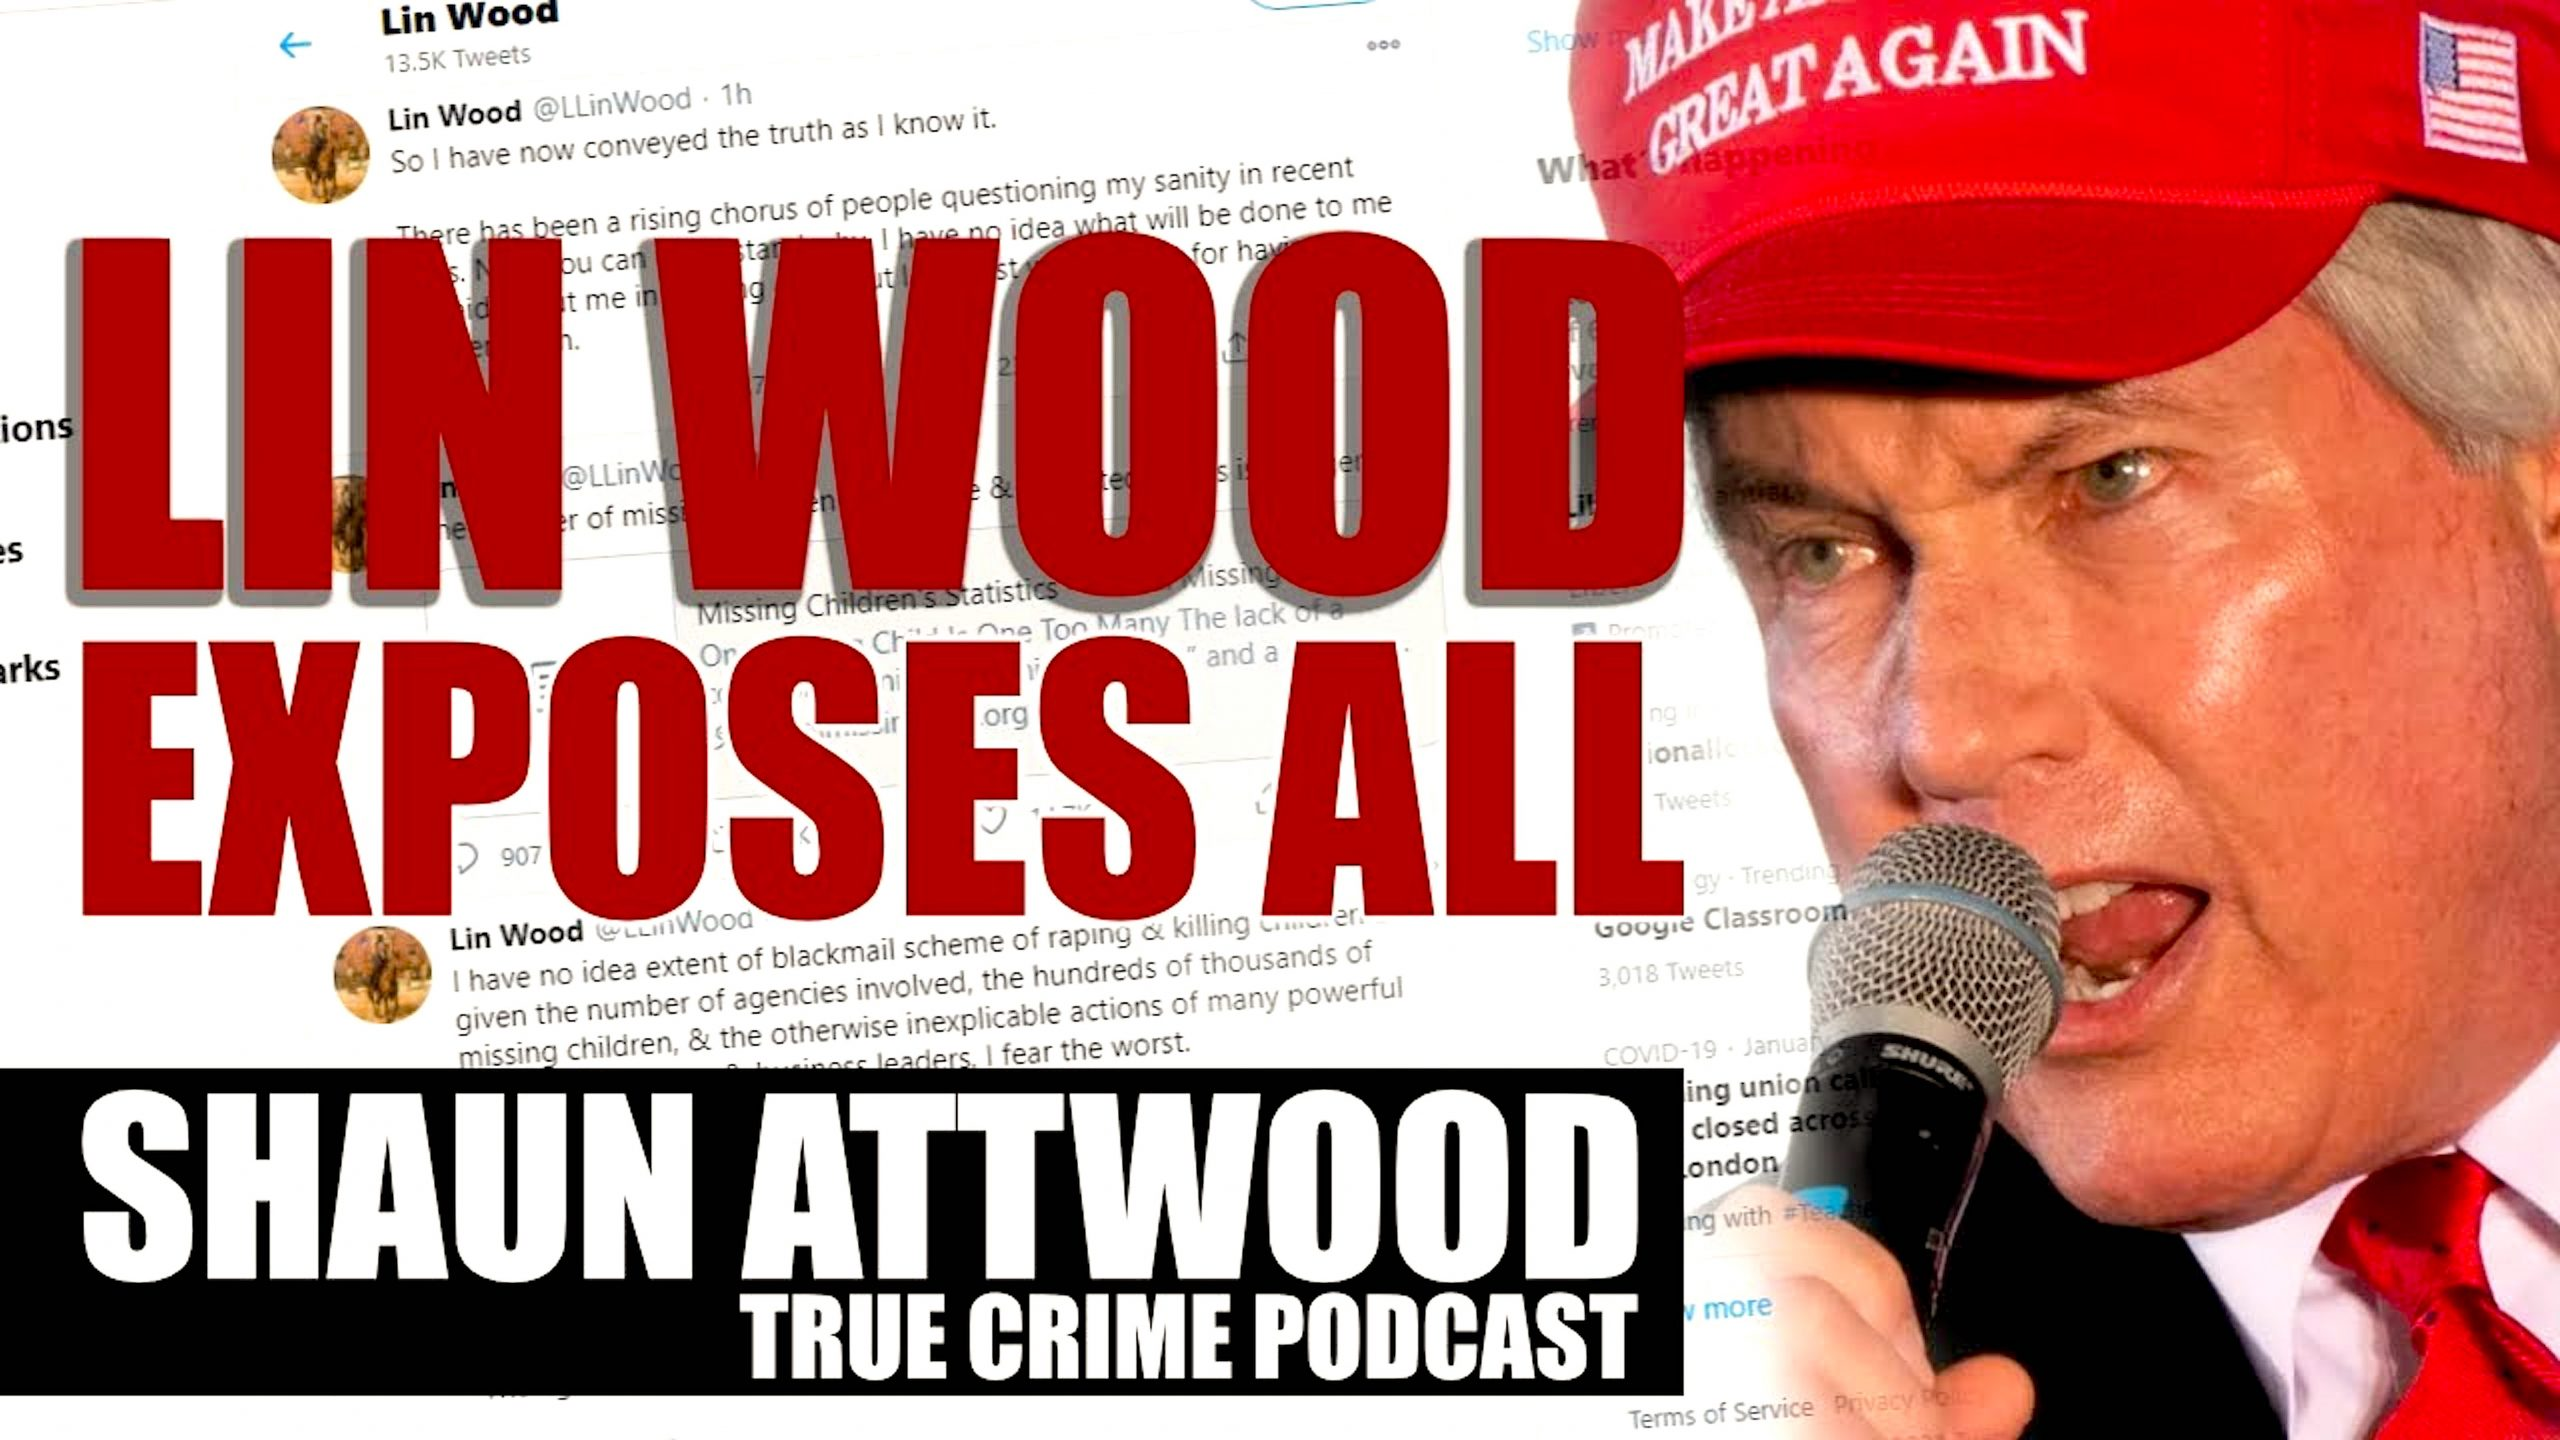 Shaun Attwood – Is Jeffrey Epstein Alive? + Lin Wood Exposes All On Twitter